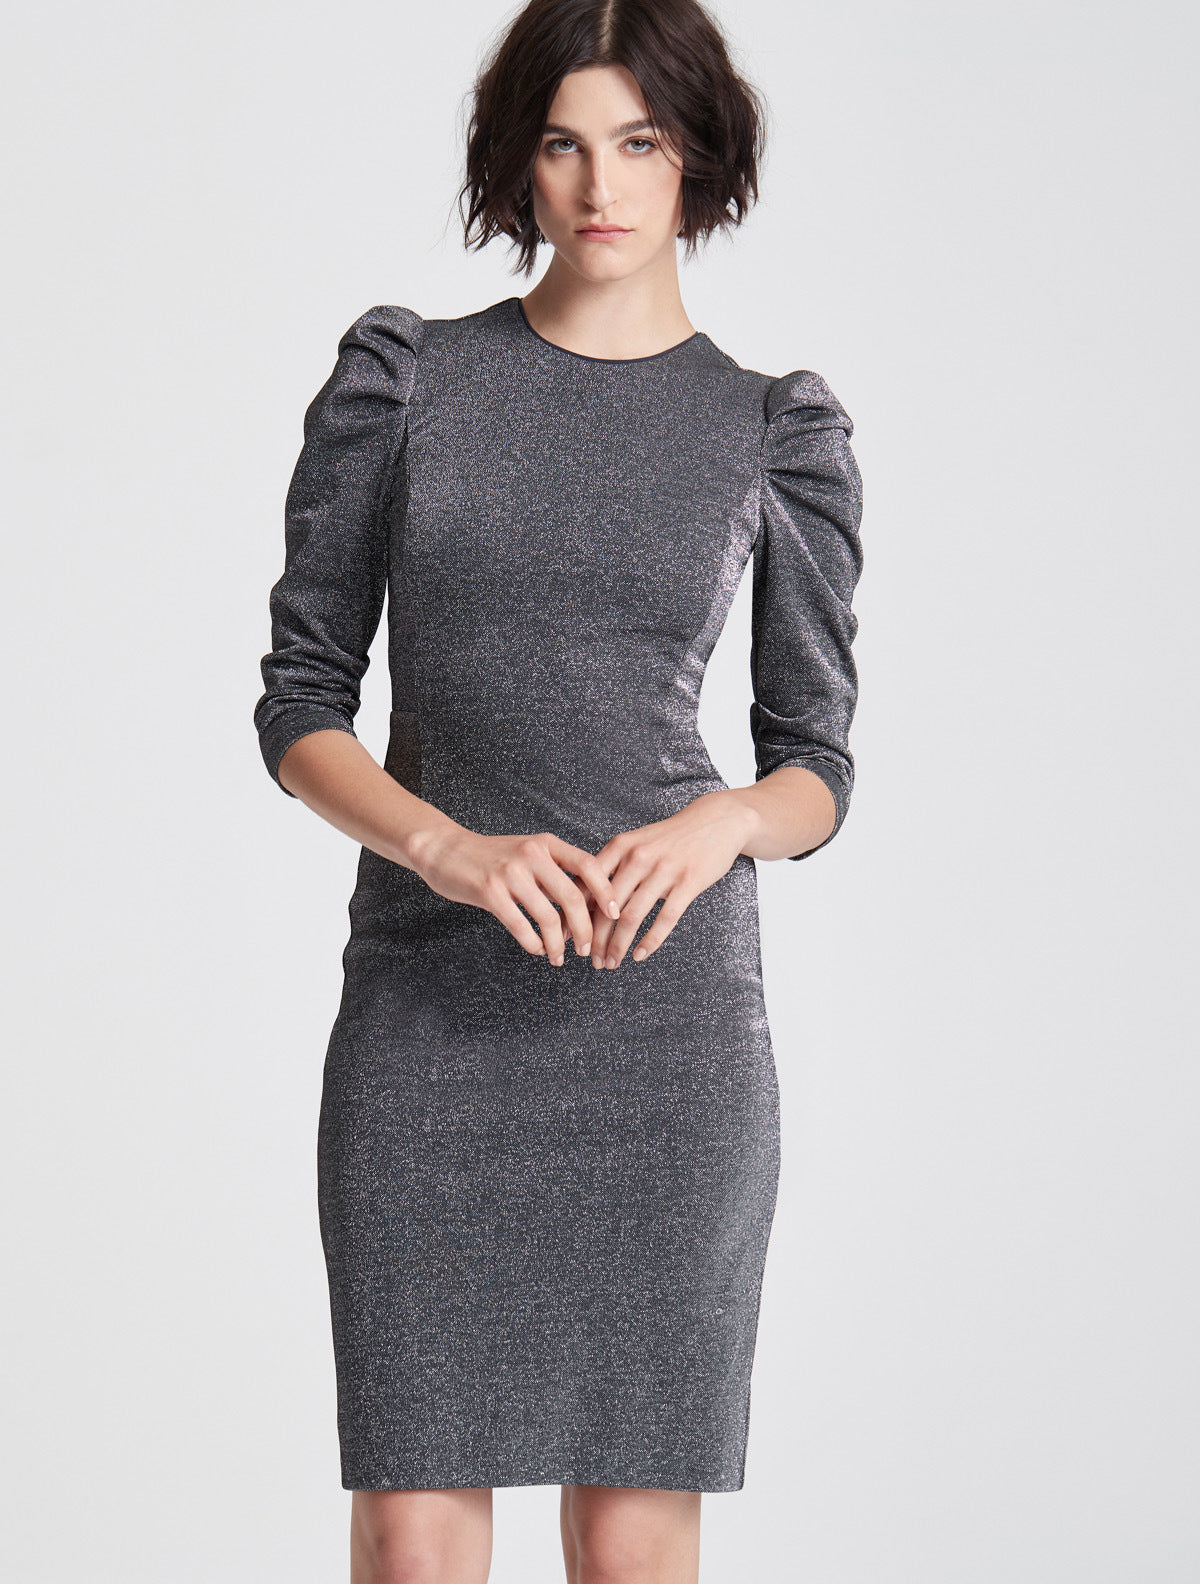 DRAPED SLEEVE SLIM METALLIC KNIT DRESS - Halston